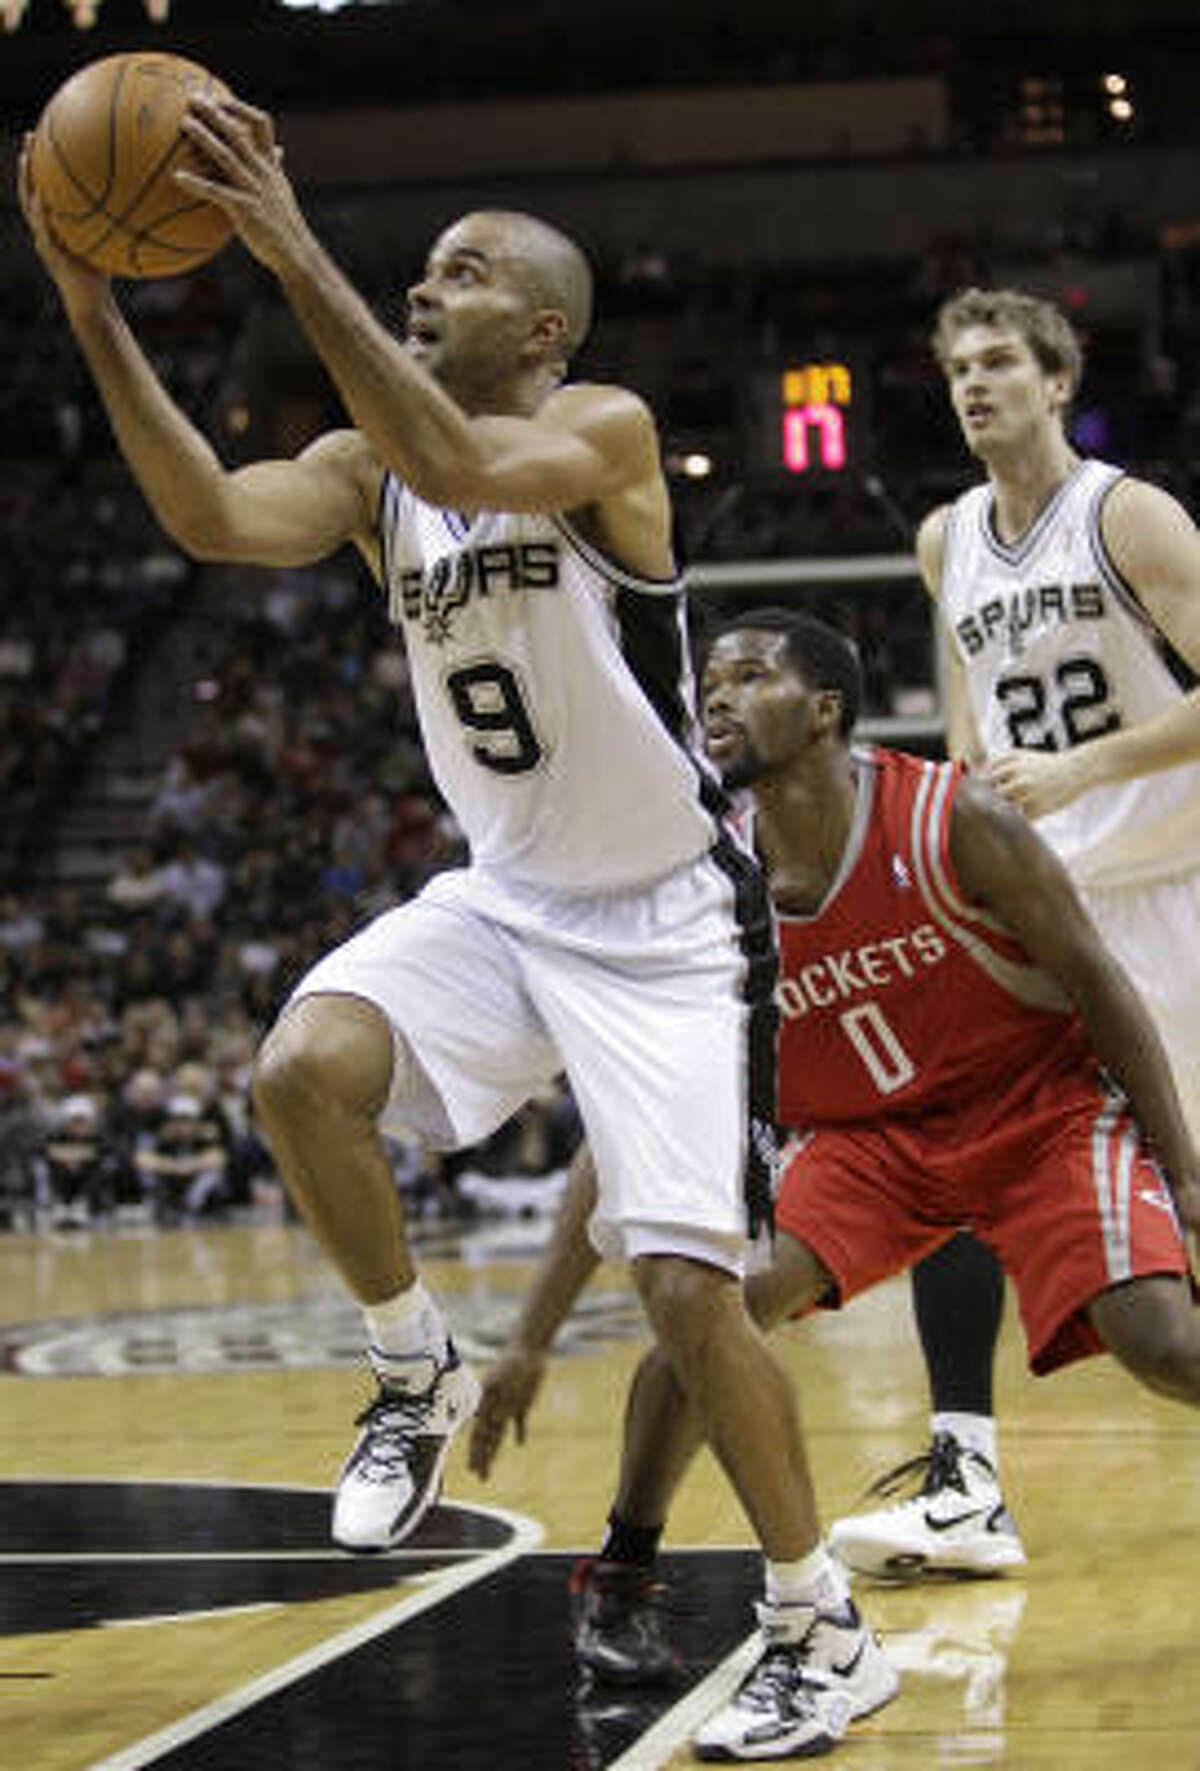 Spurs guard Tony Parker looks to put up the shot in front of Rockets guard Aaron Brooks during the first quarter.